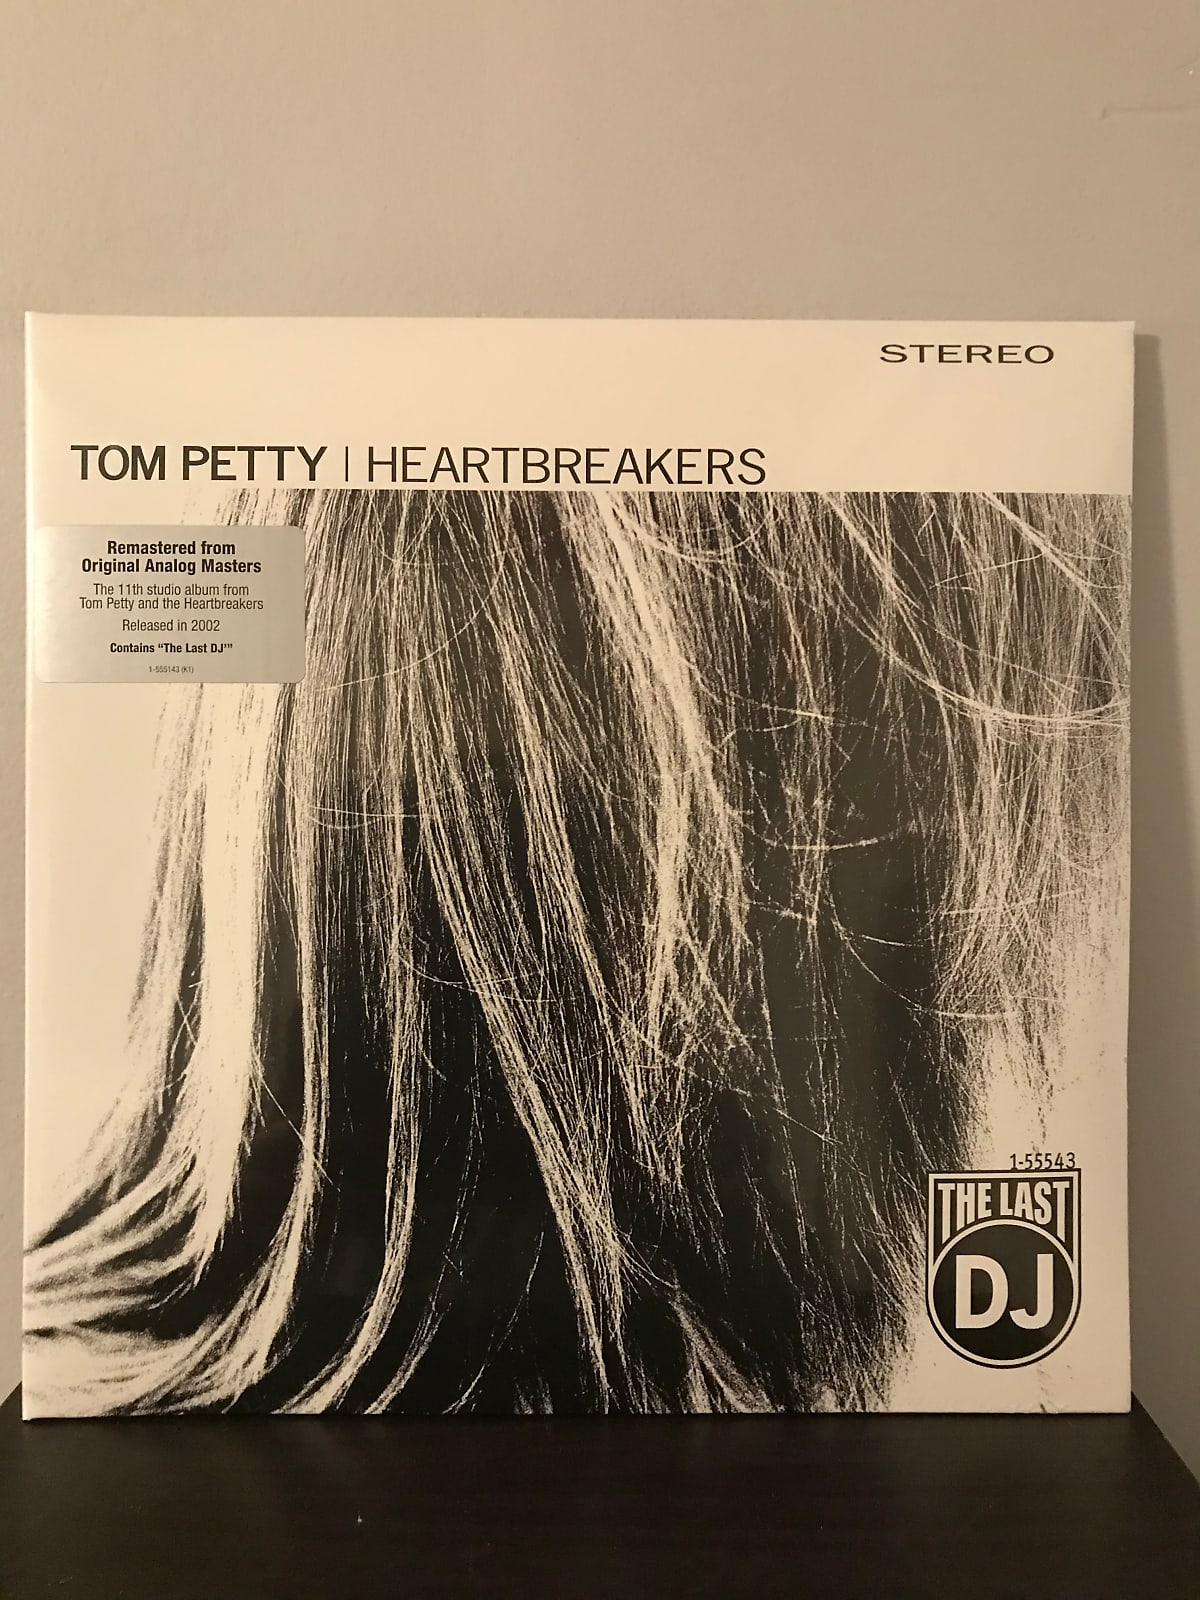 Tom Petty And The Heartbreakers - The Last DJ - Vinyl